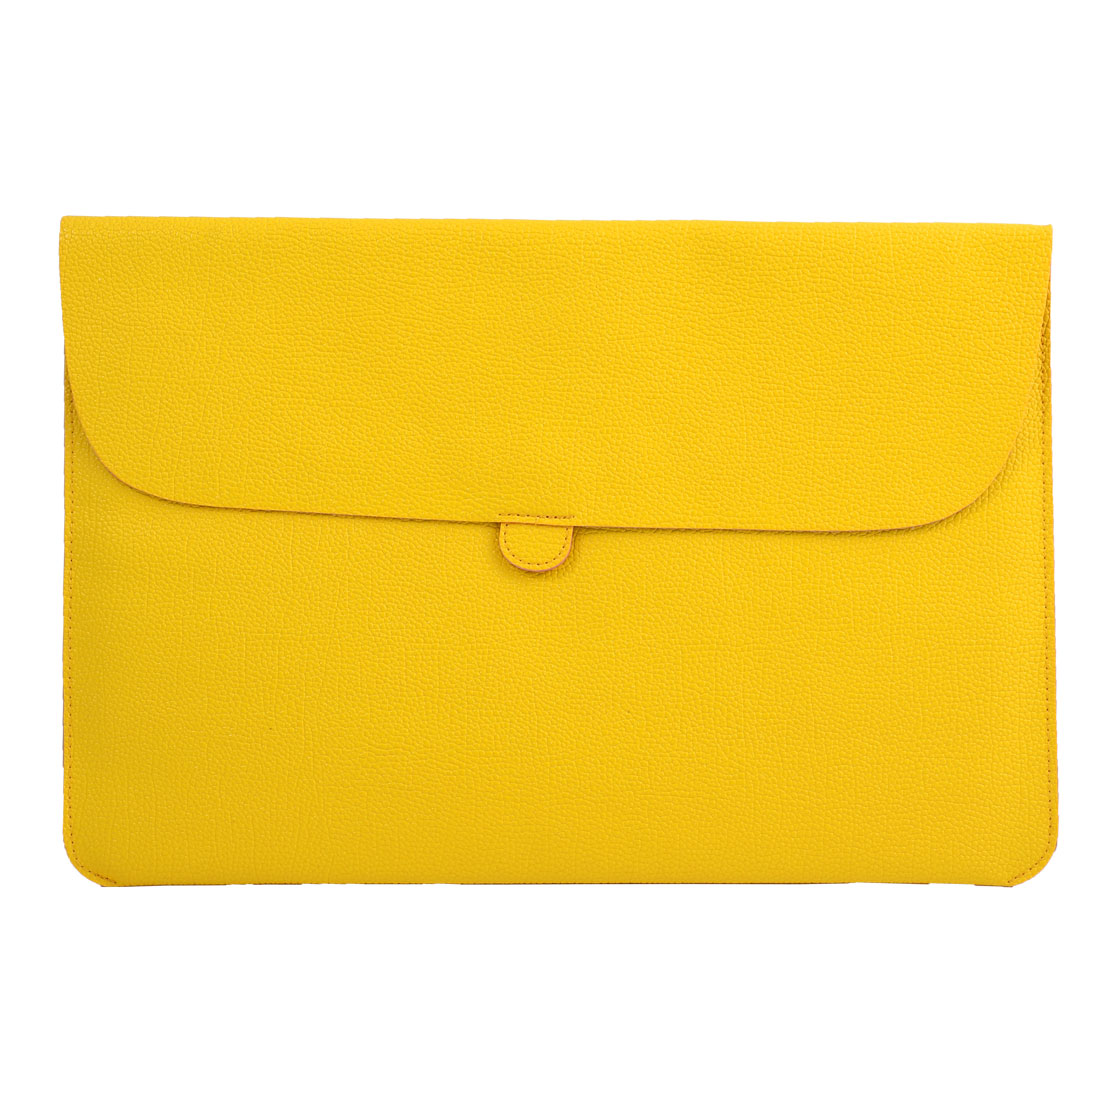 Carrying Laptop Case Pouch Envelope Shape Tablet Sleeve Bag Yellow for Macbook 13.3""